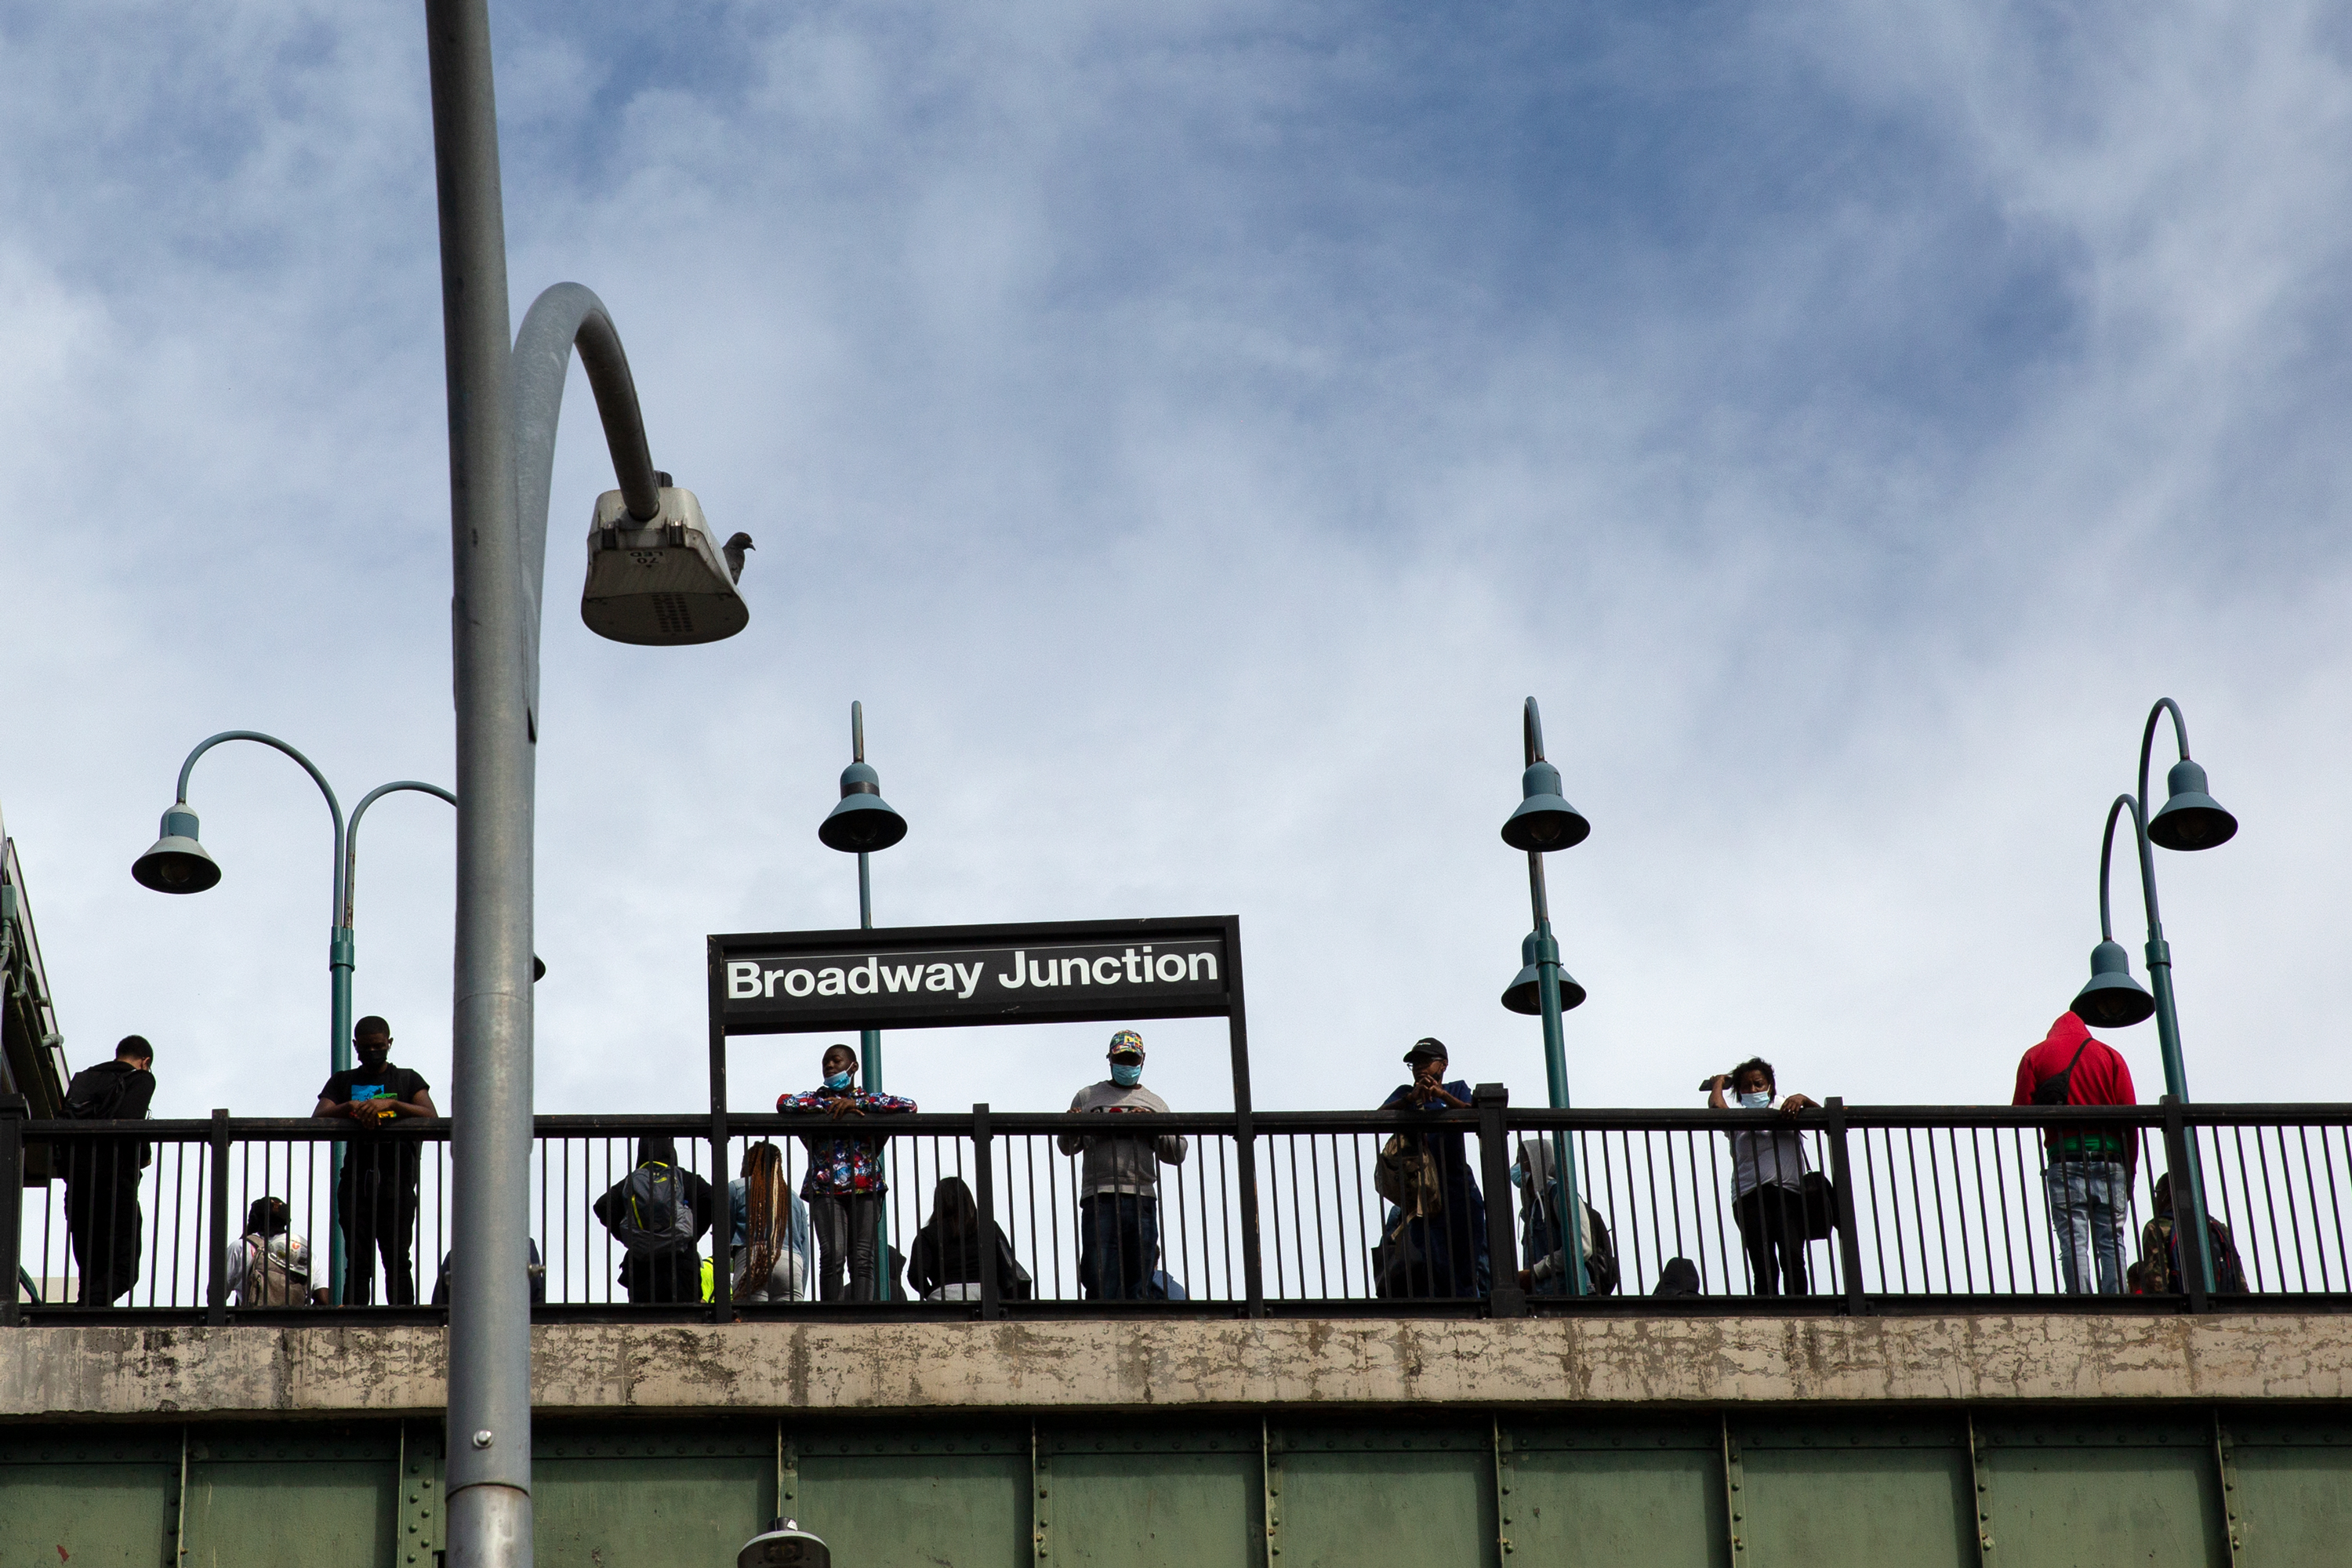 People wait for a train at the Broadway Junction station in Brooklyn, Sept. 22, 2021.